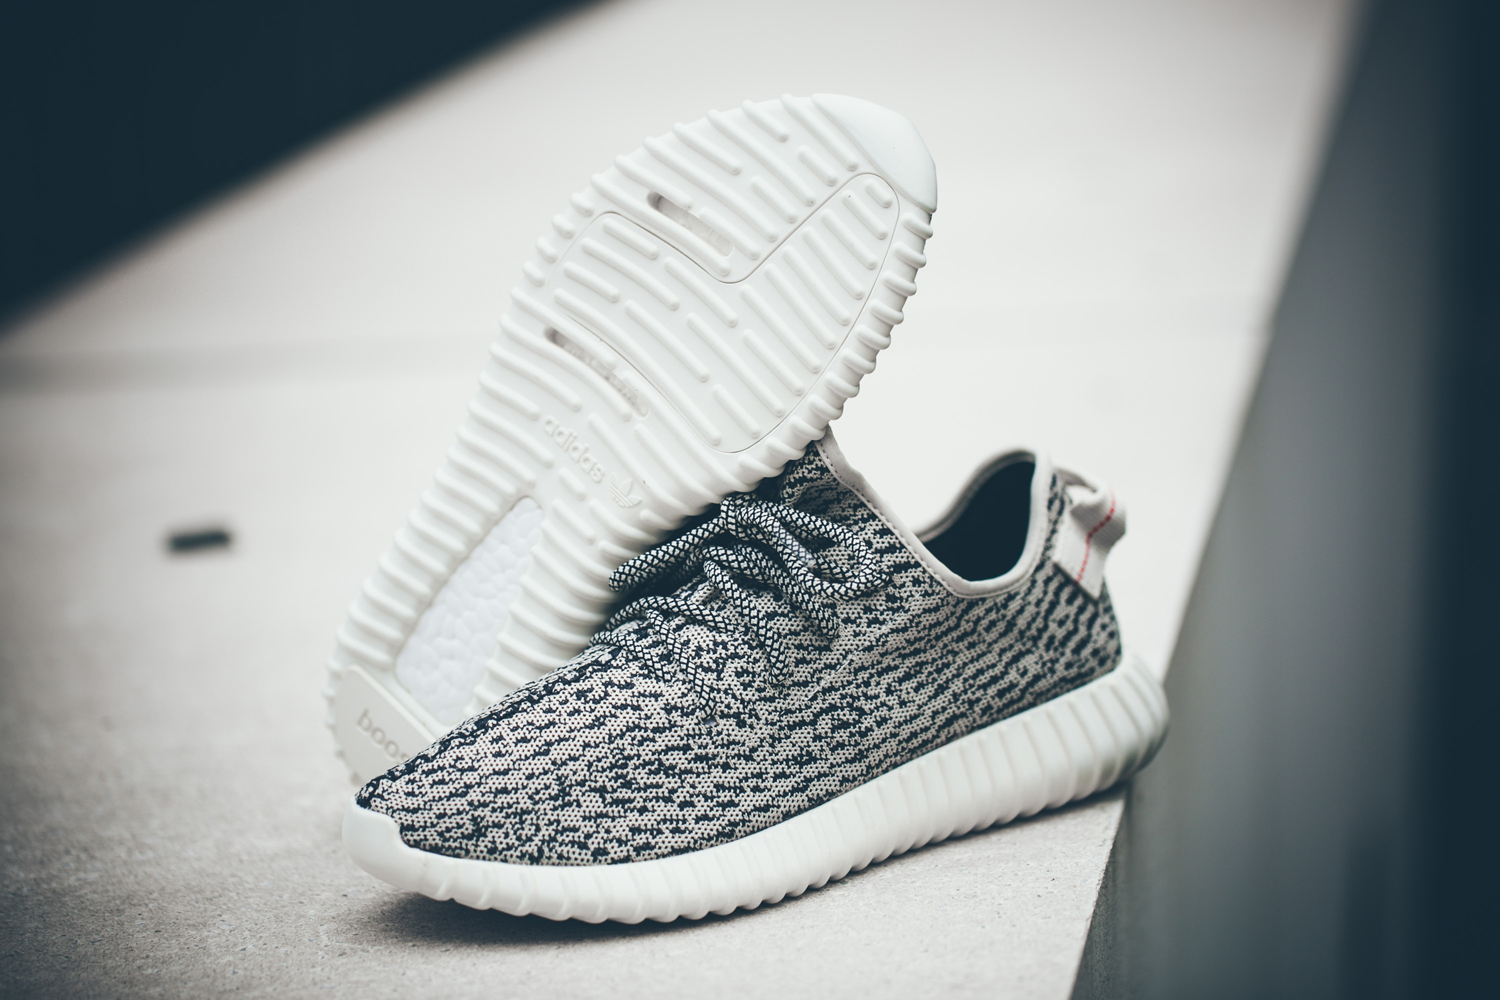 New Uk adidas yeezy 350 sign up Oxford Tan Where You Can Buy